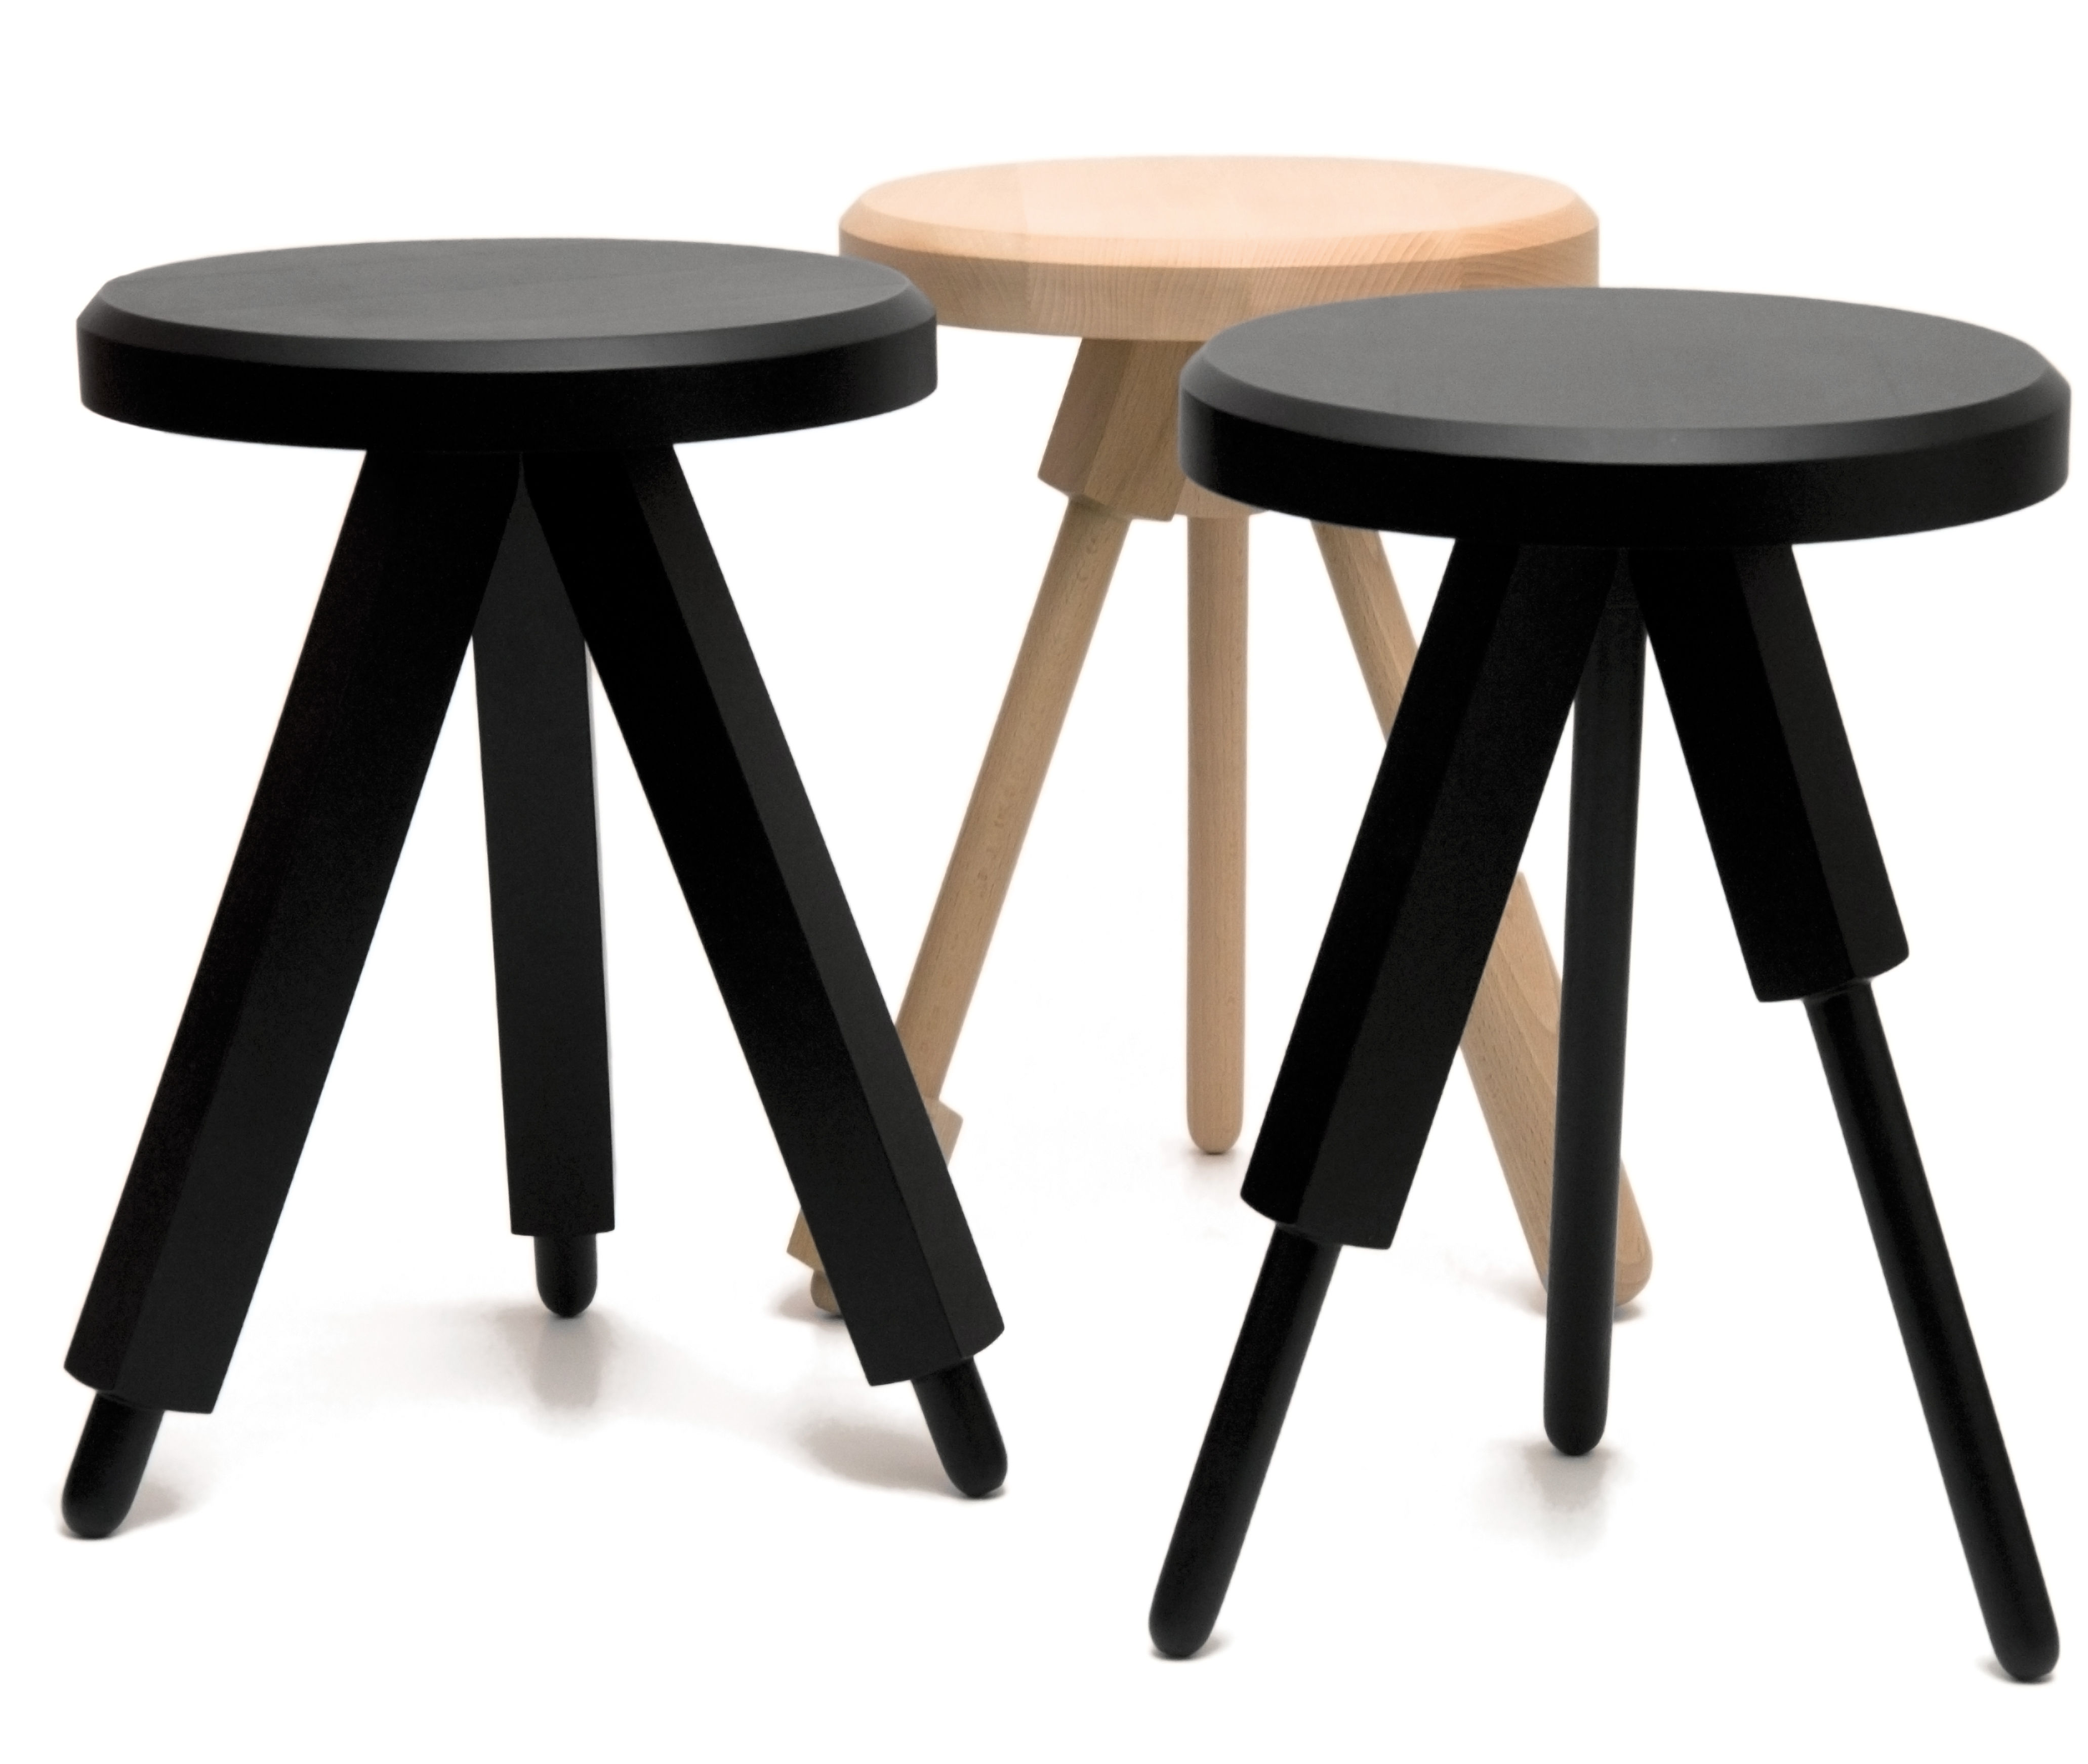 tabouret milk stool version 3 bois bois naturel version 3 y 39 a pas le feu au lac made. Black Bedroom Furniture Sets. Home Design Ideas